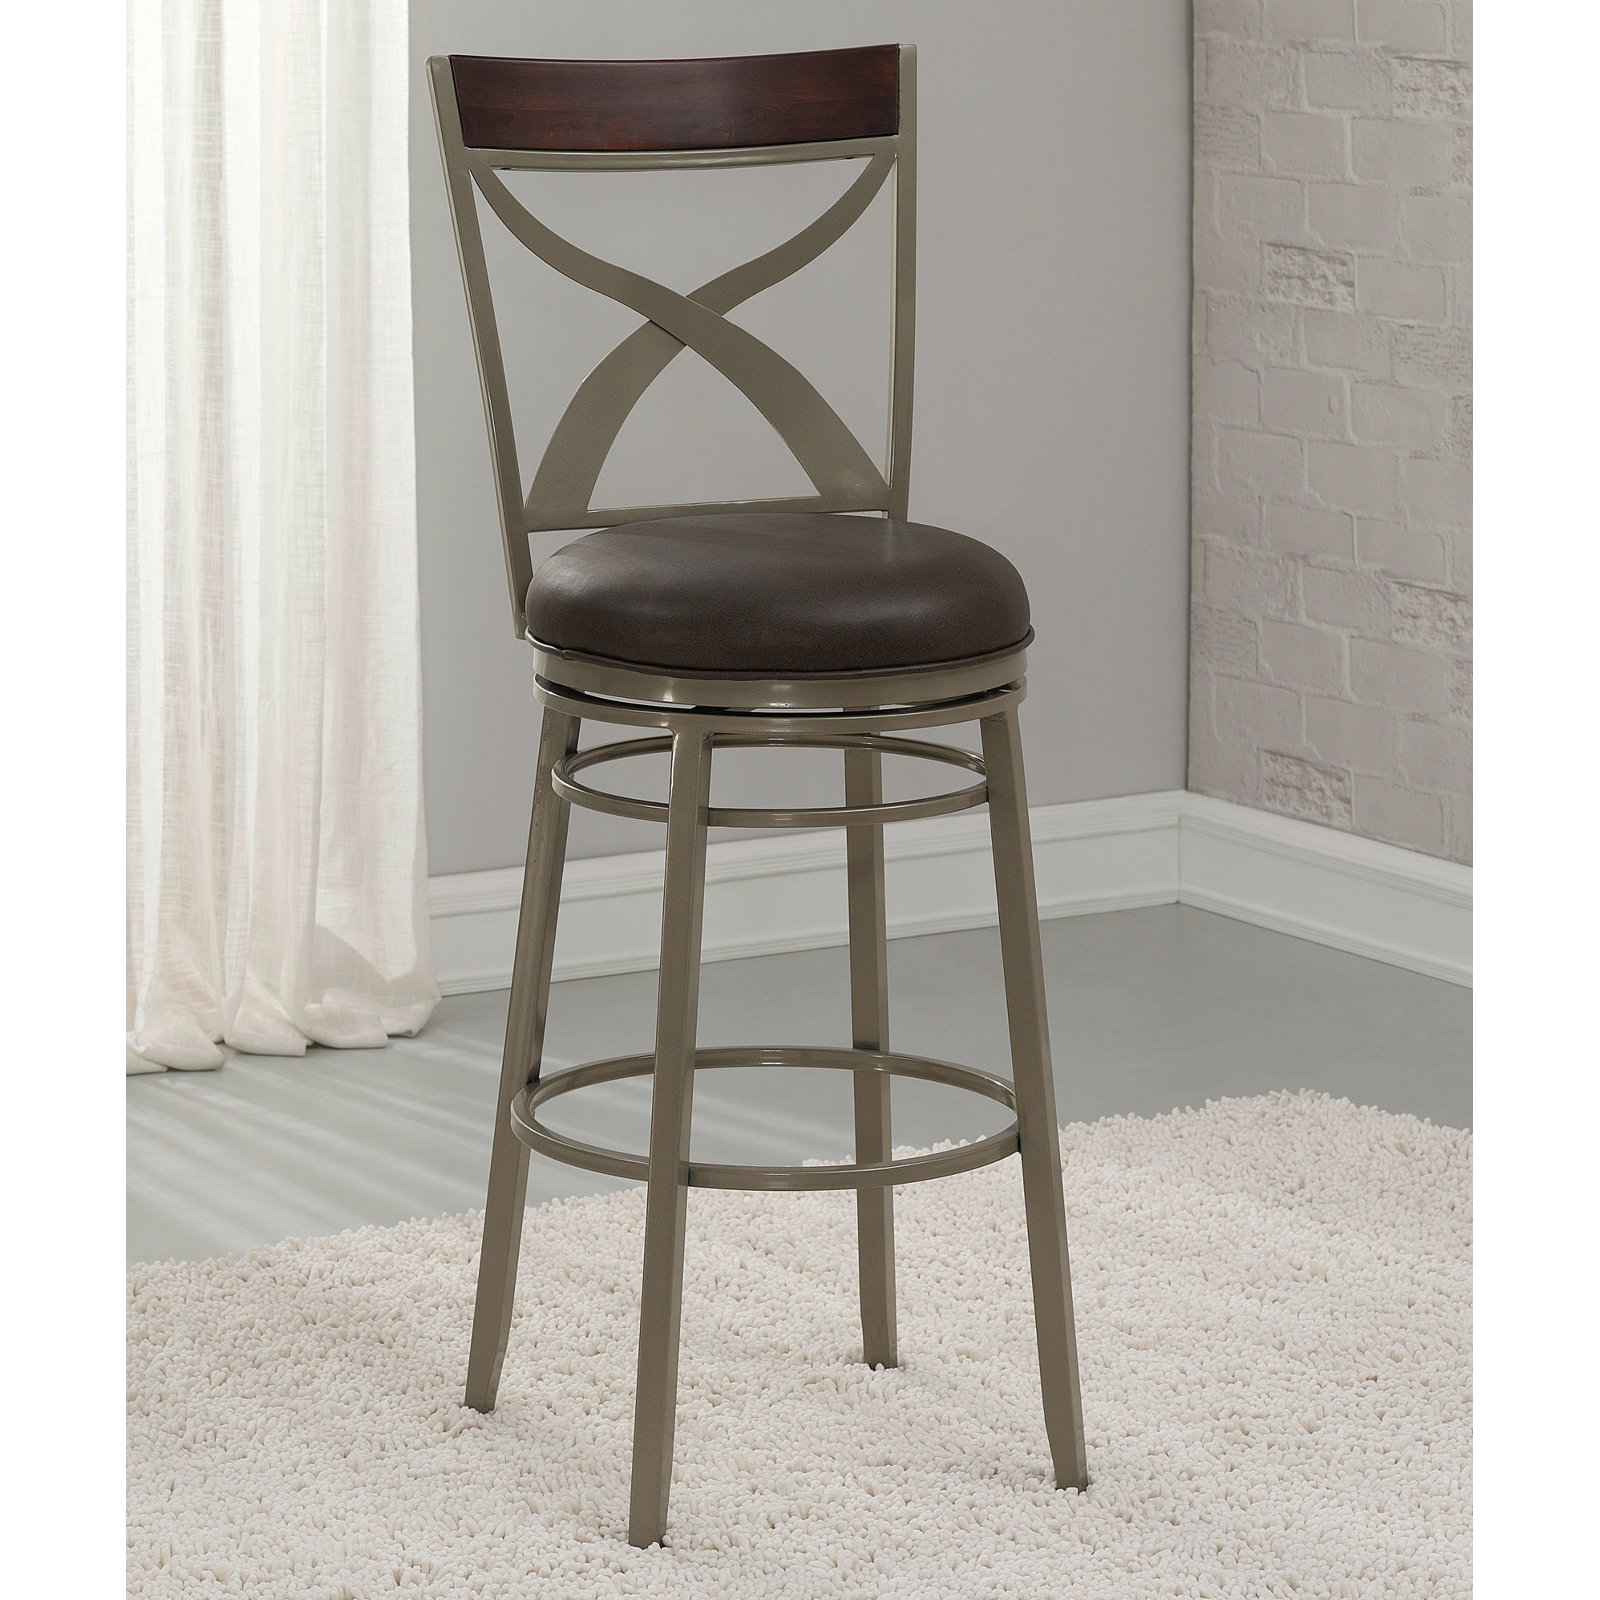 American Heritage Billiards Avalon Counter Stool by American Heritage Billiards